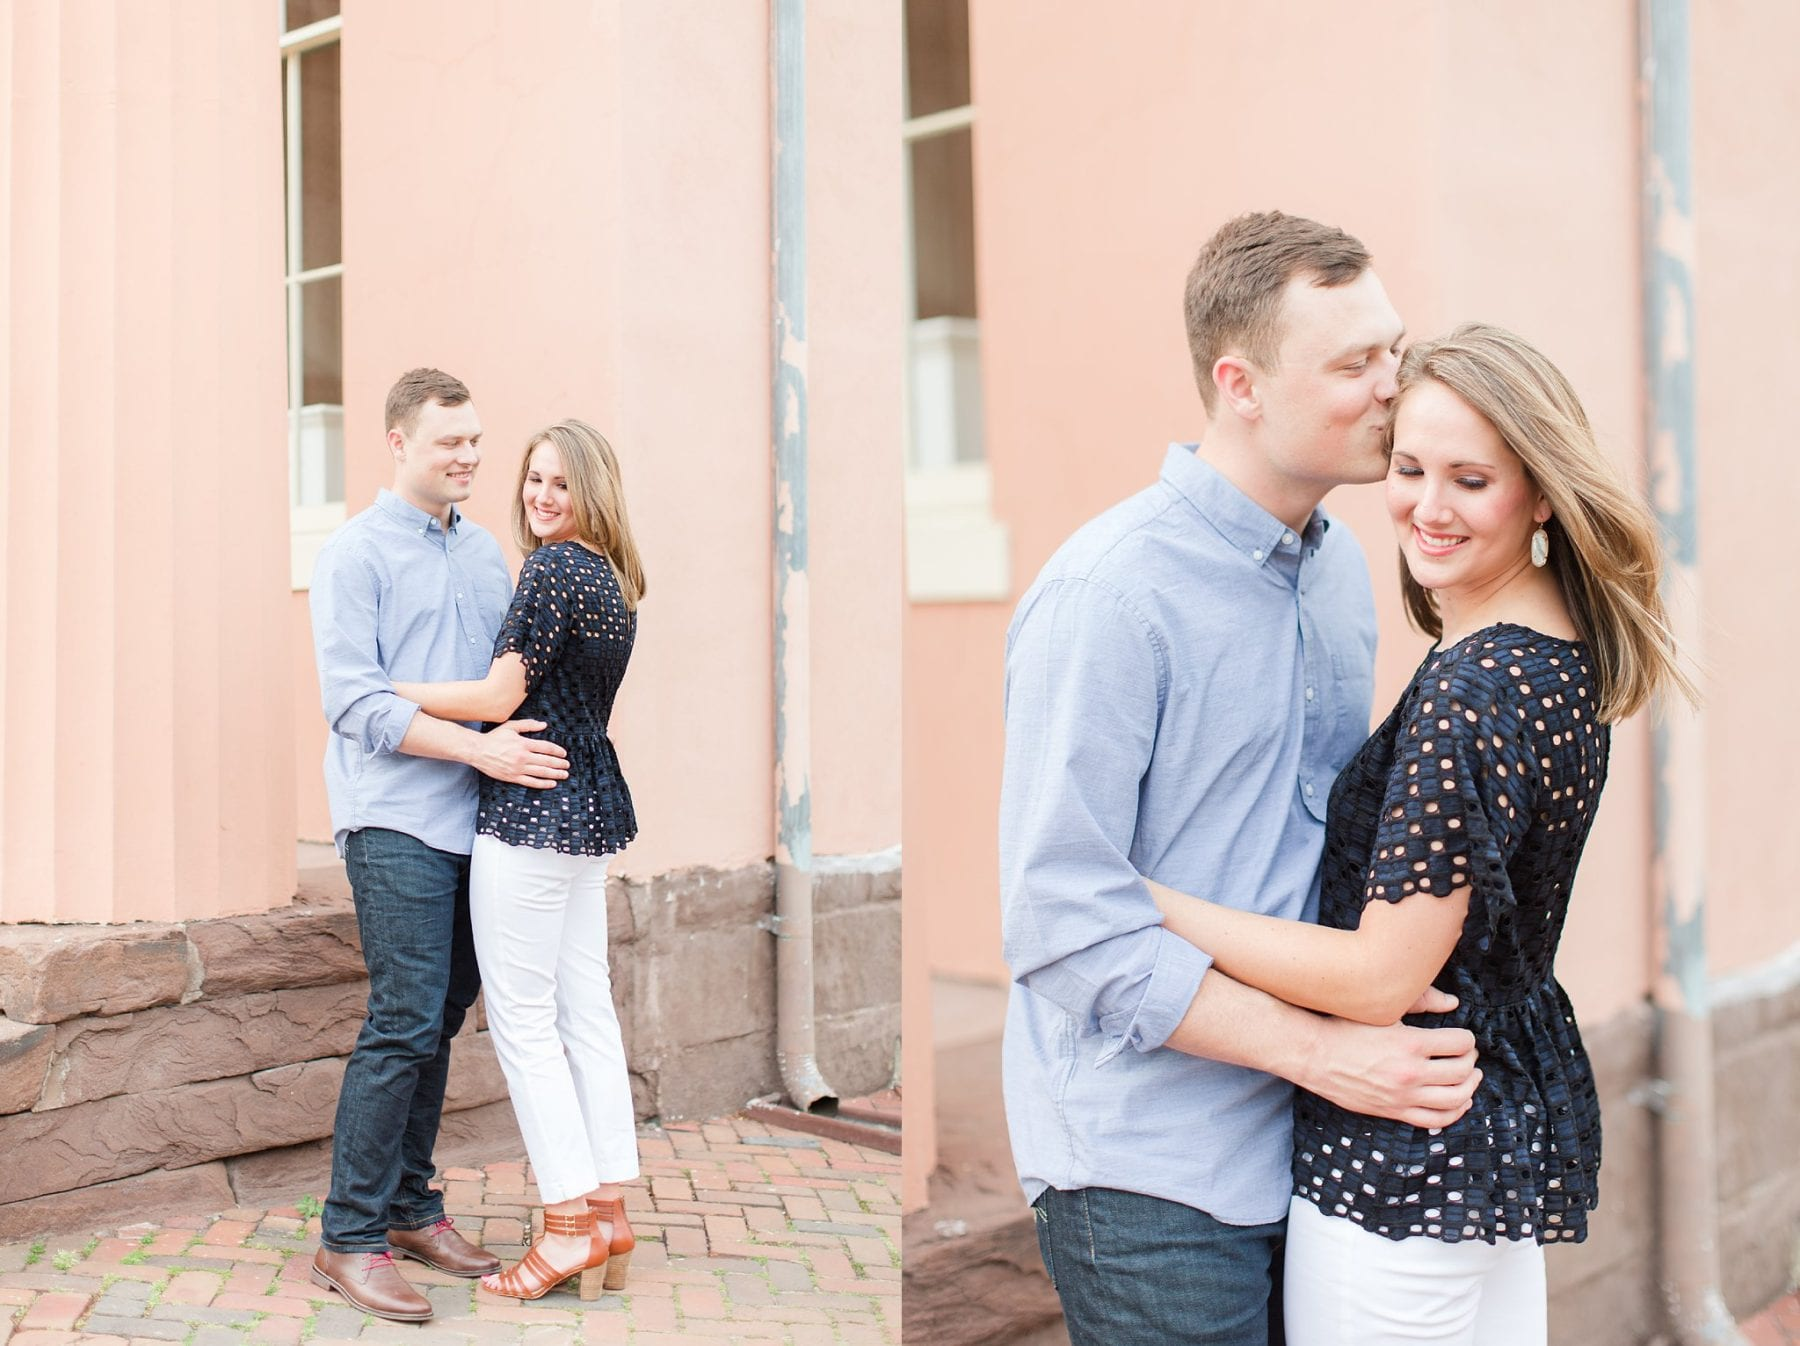 Springtime Old Town Alexandria Engagement Session Matt & Maxie Megan Kelsey Photography-205.jpg